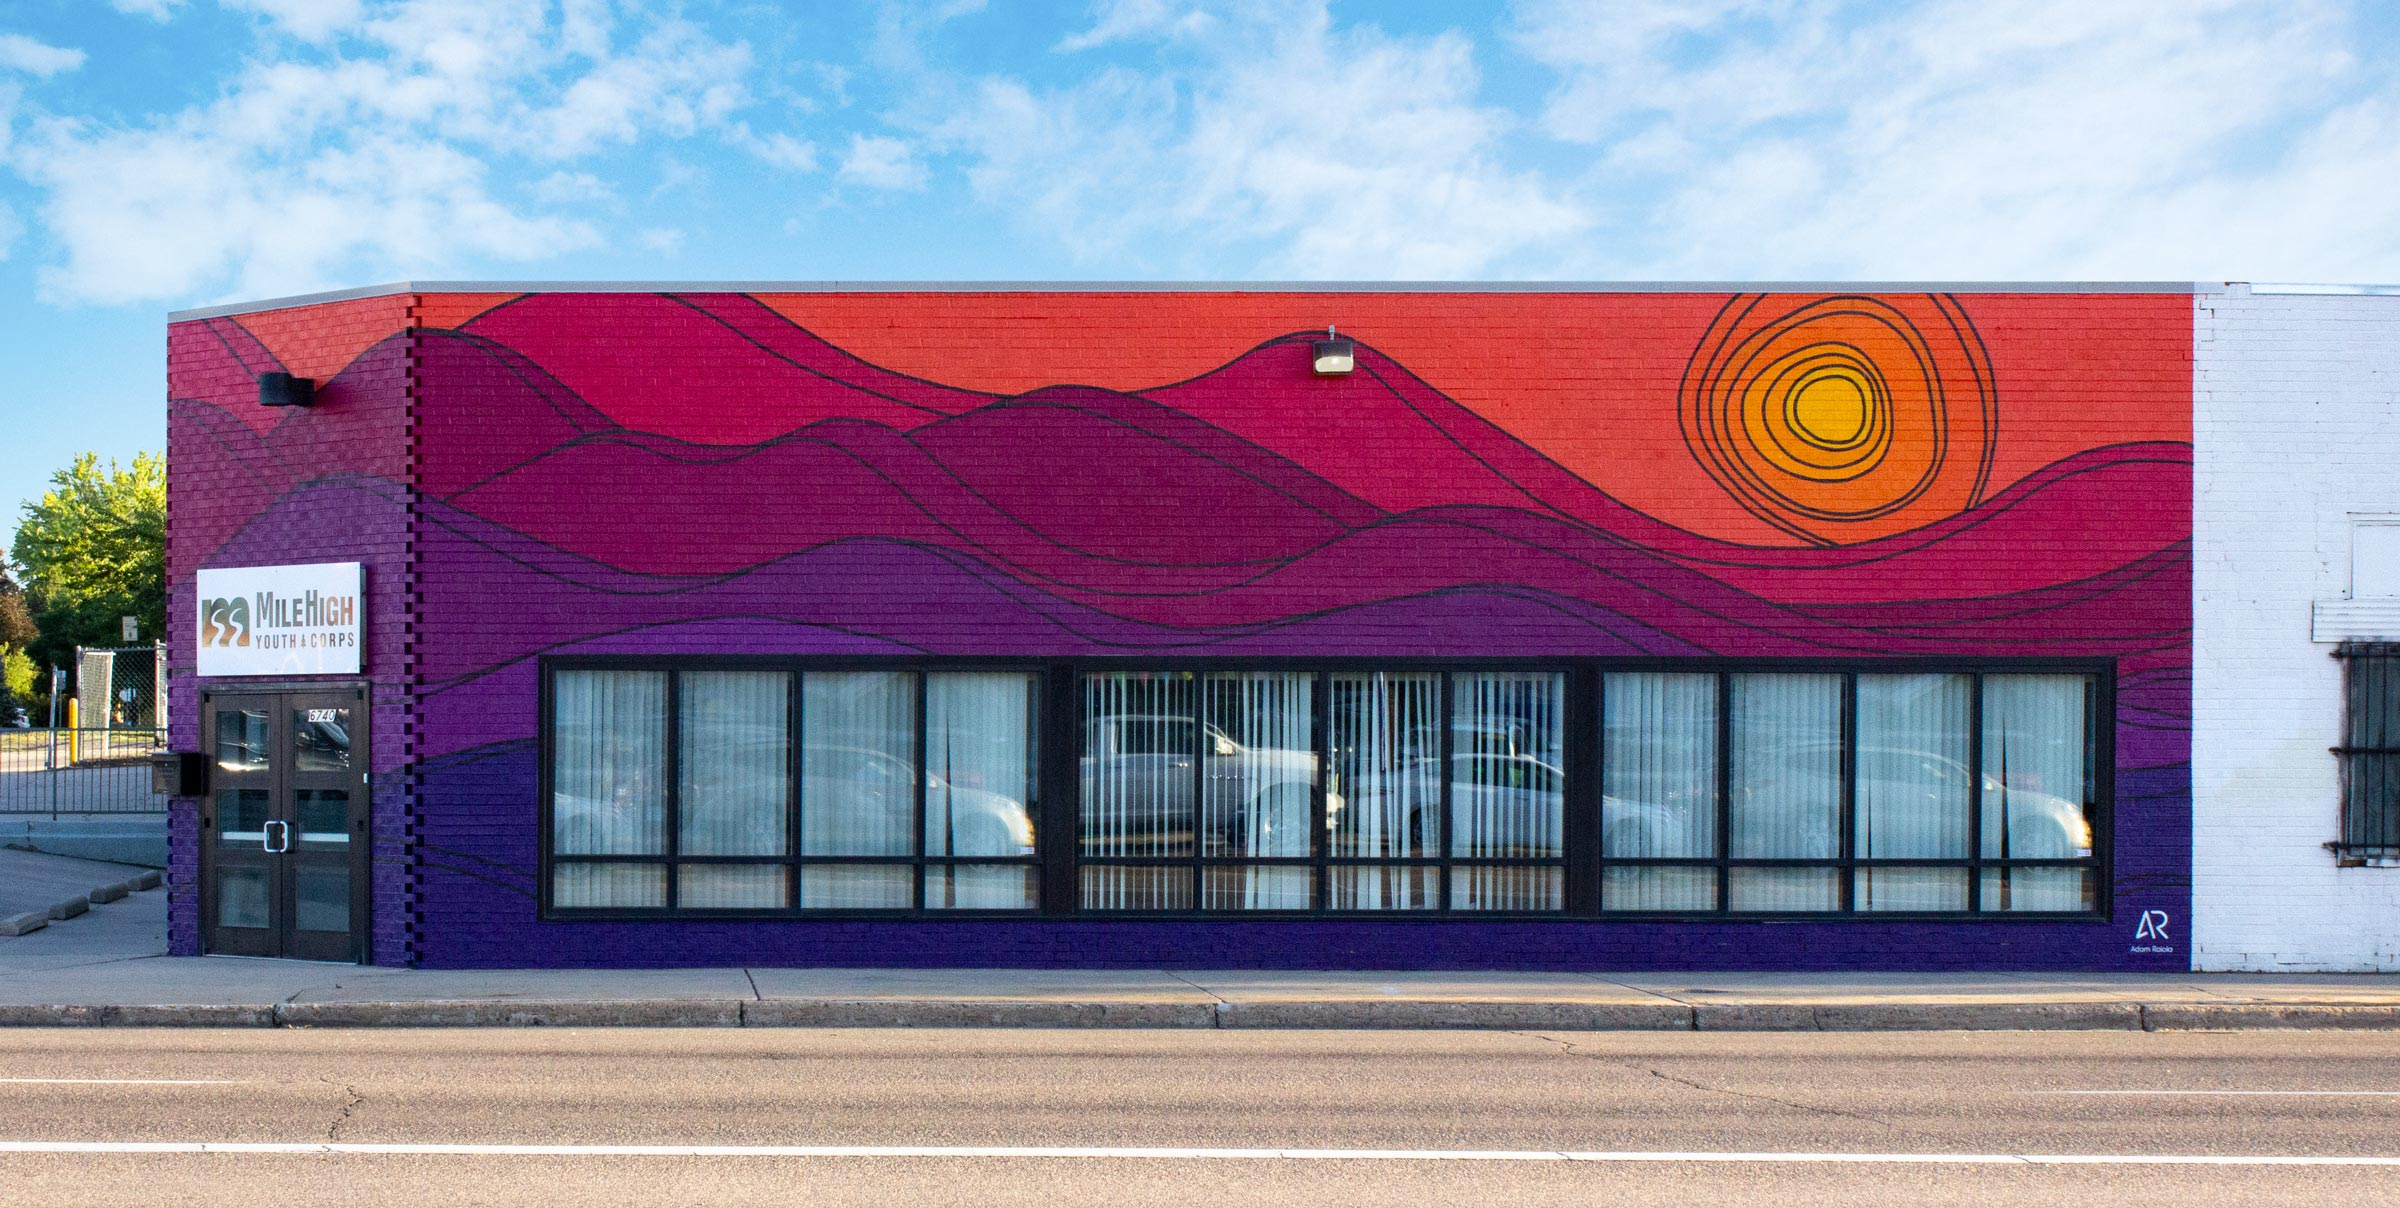 A mural on a brick building that depicts an abstract sunset over purple mountains.